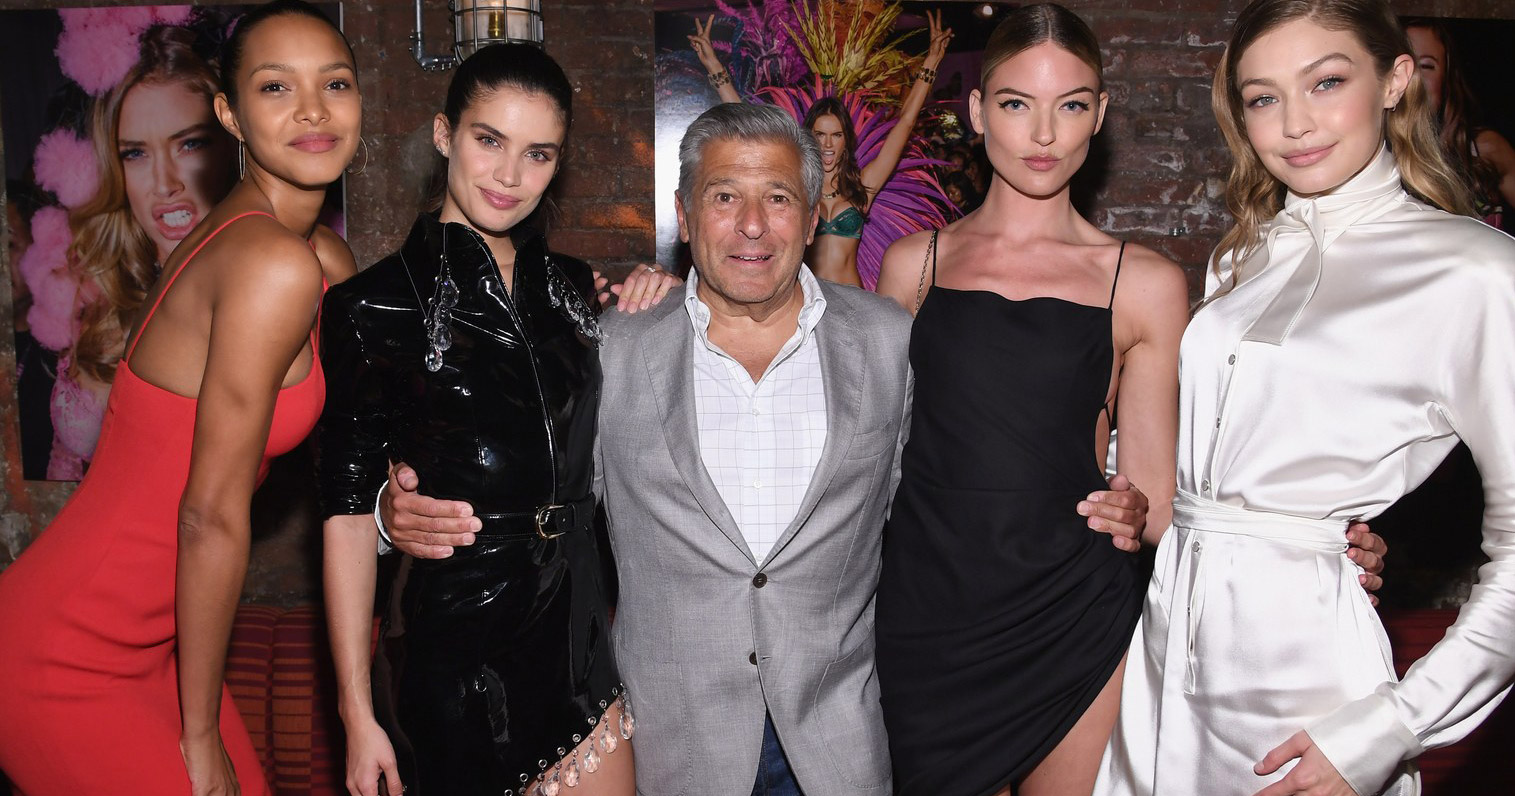 Ed Razek with Victoria's Secret models at the annual show